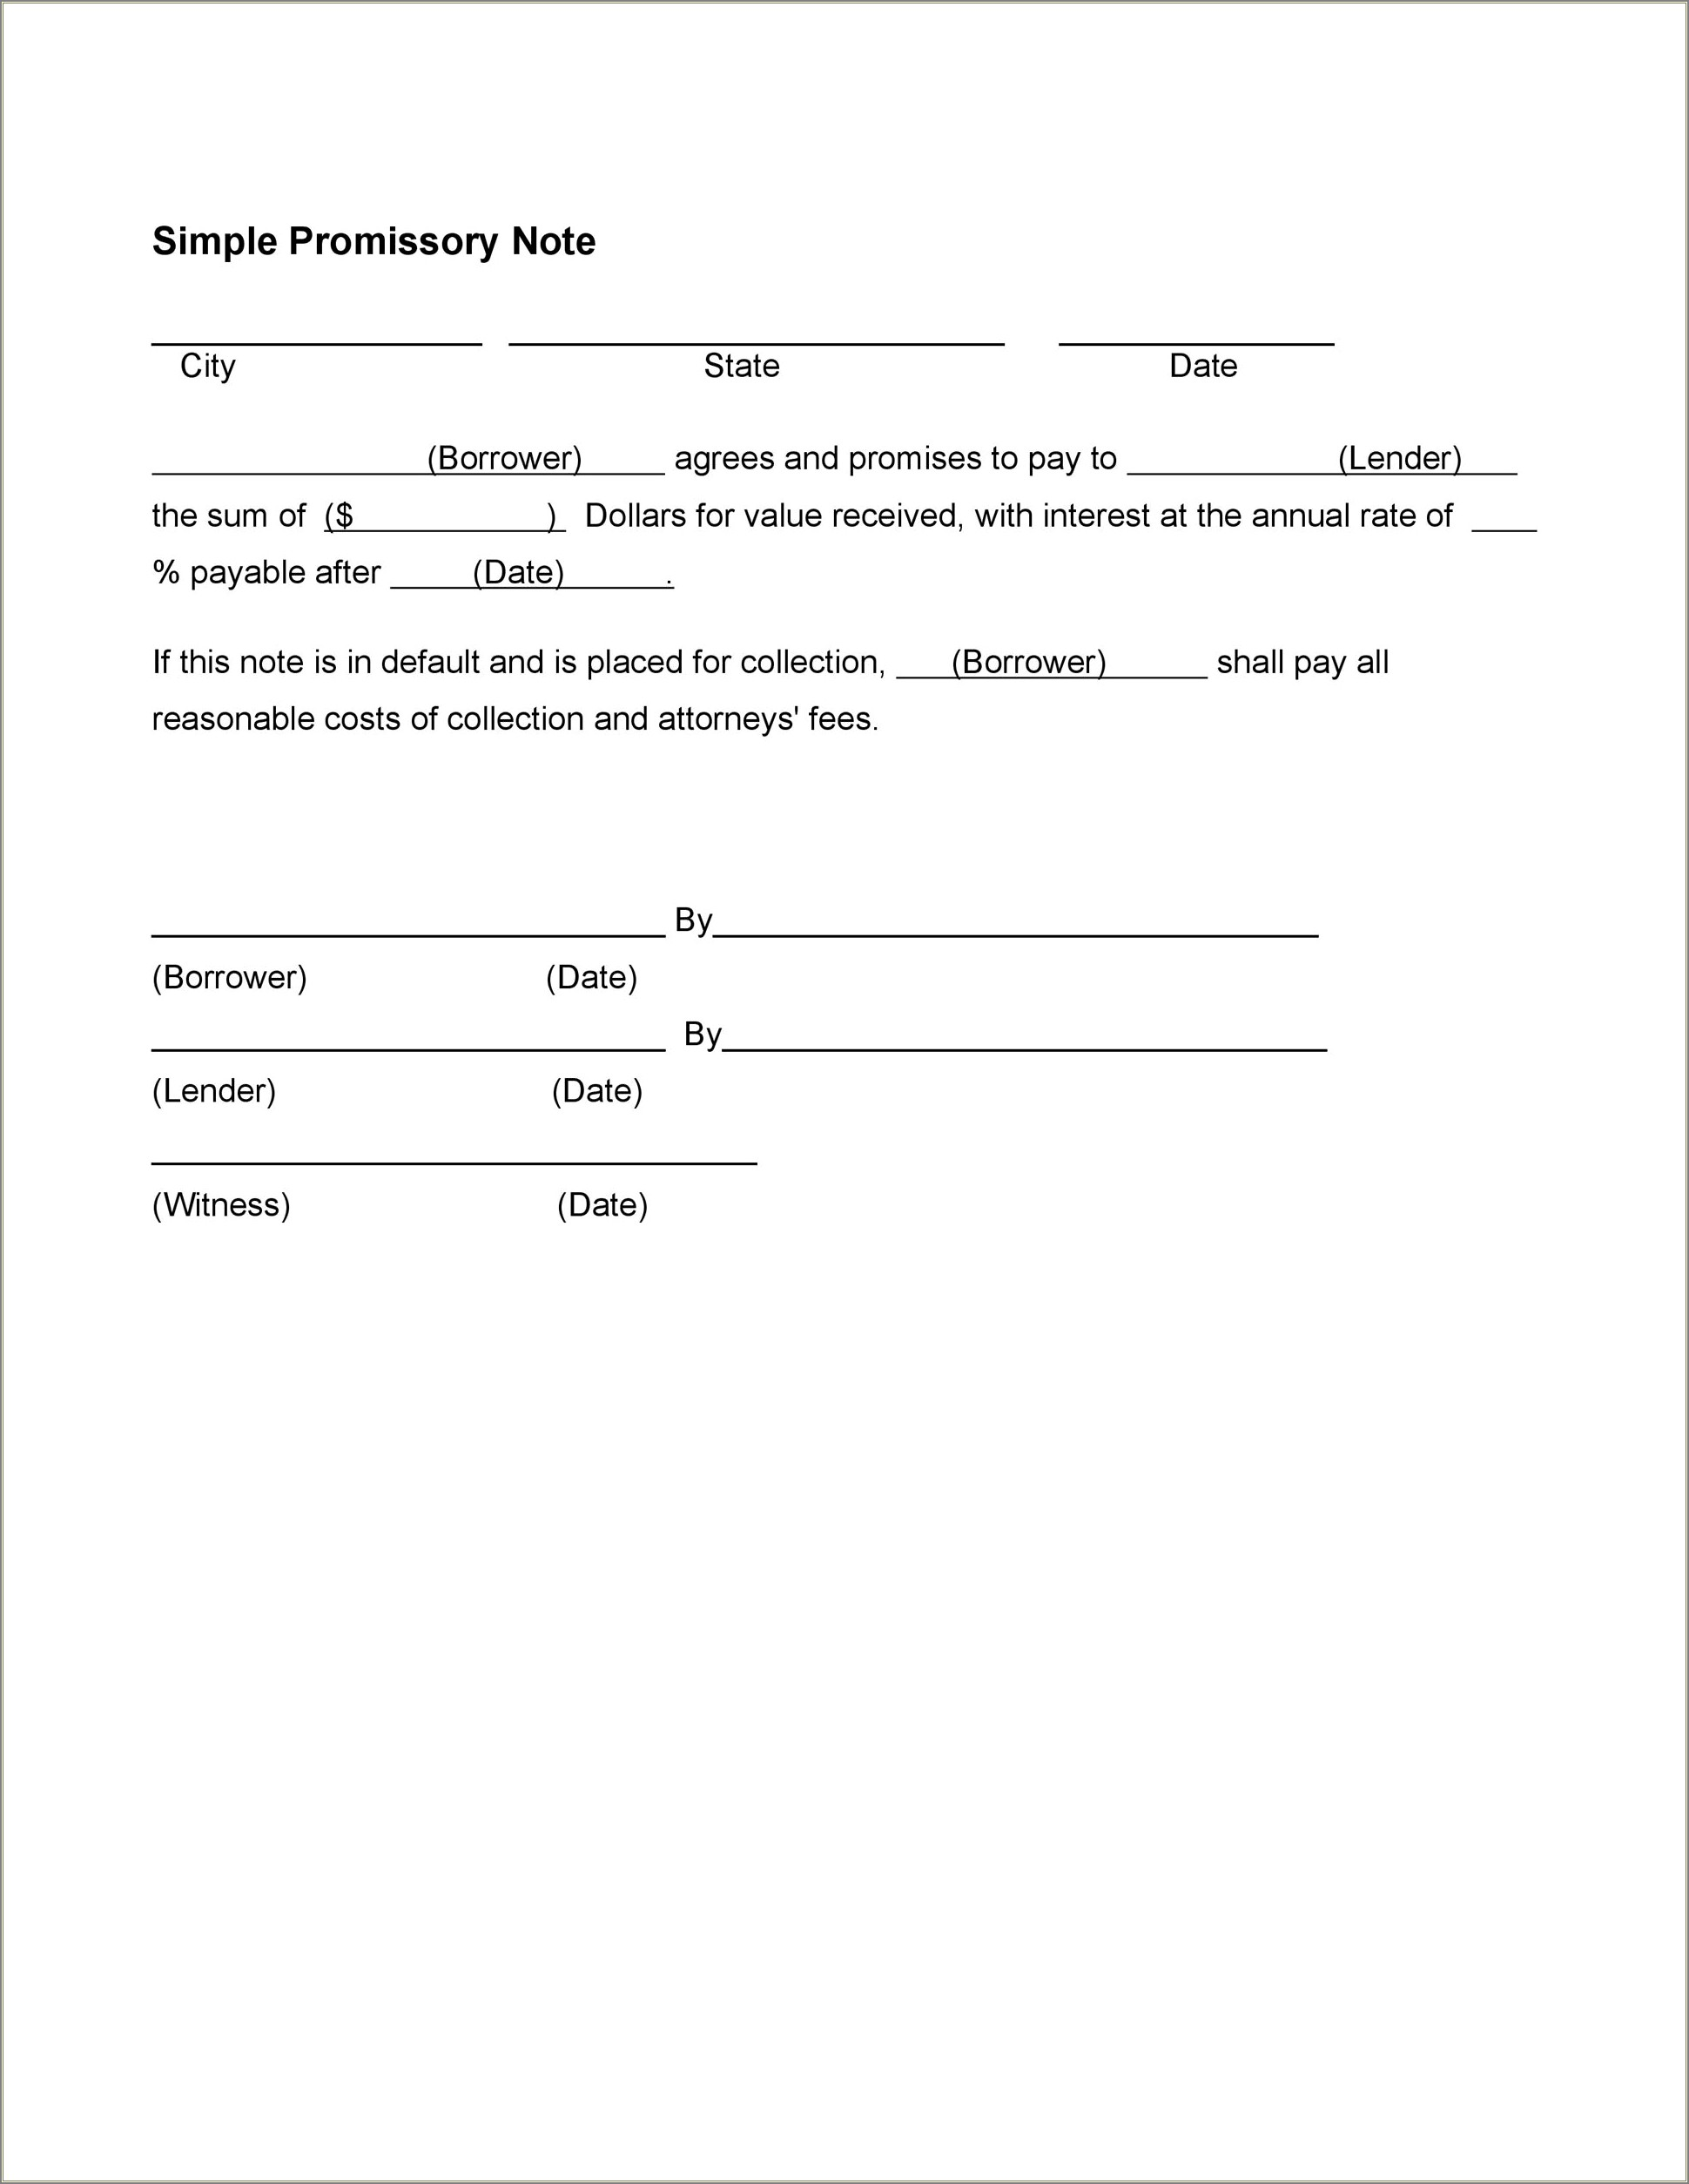 Simple Promissory Note Sample Letter Word